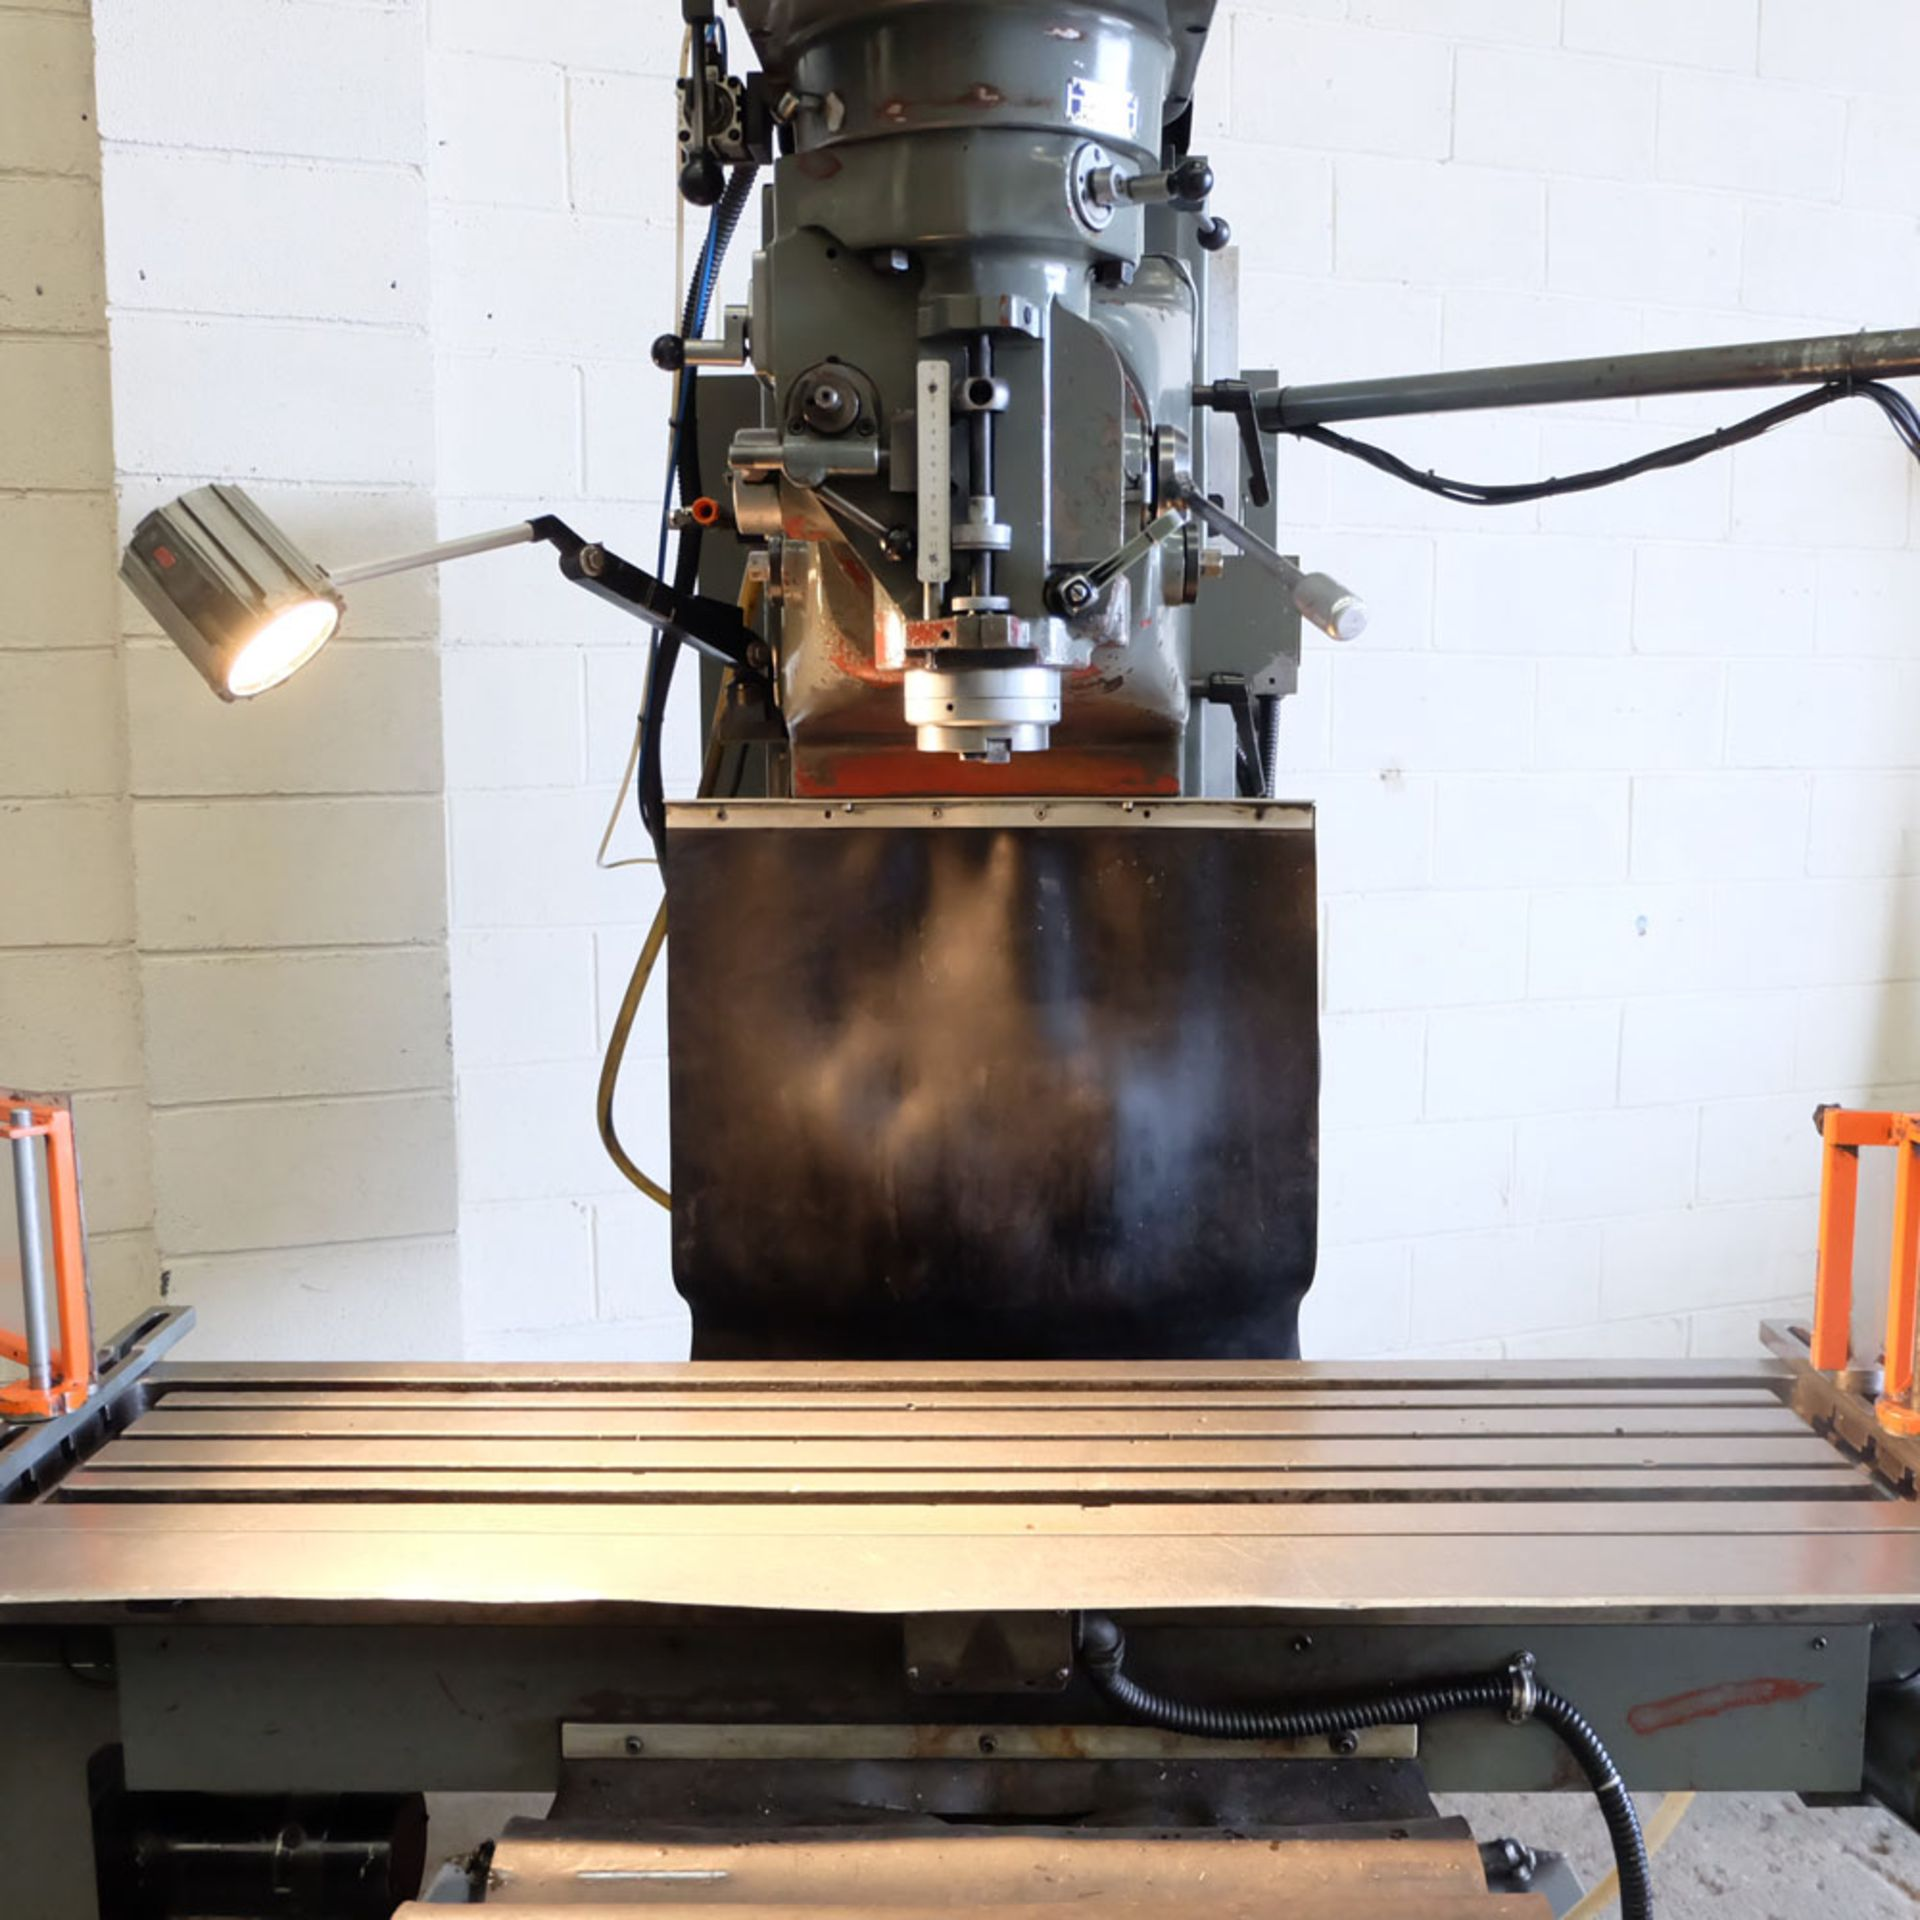 XYZ 4000 Proto Trak MX2 2 Axis CNC Bed Milling Machine. Table Size: 1480mm x 360mm. Taper 40 ISO. - Image 4 of 6